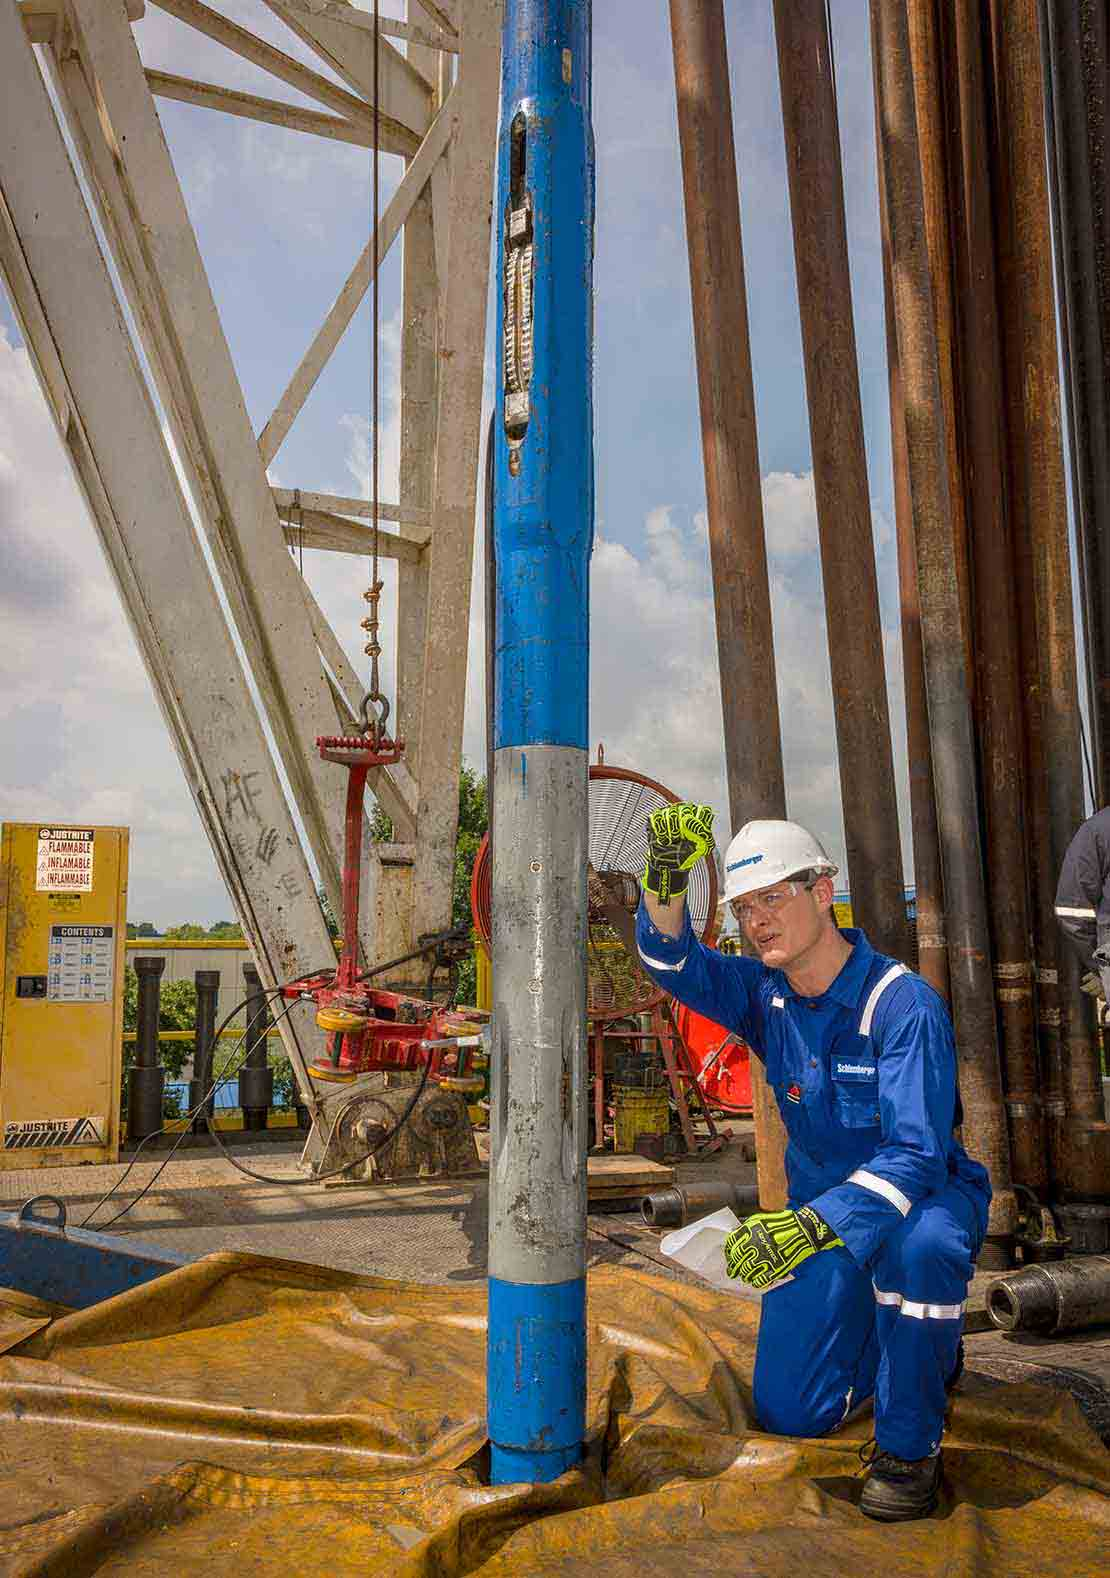 Schlumberger working kneeling down next to Rhino XC on-demand hydraulically actuated reamer on rigsite.